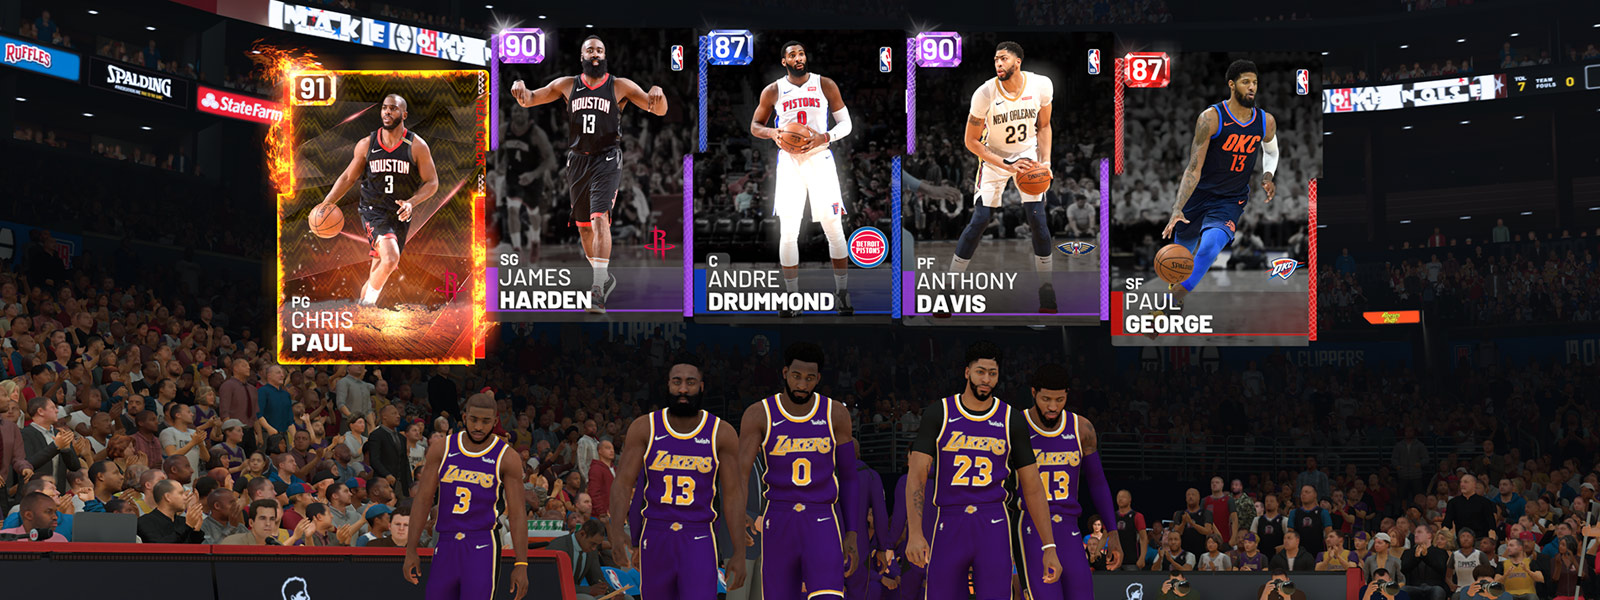 Front view of Lakers team consisting of Chris Paul, James Harden, Andrew Drummond, Anthony Davis, and Paul George